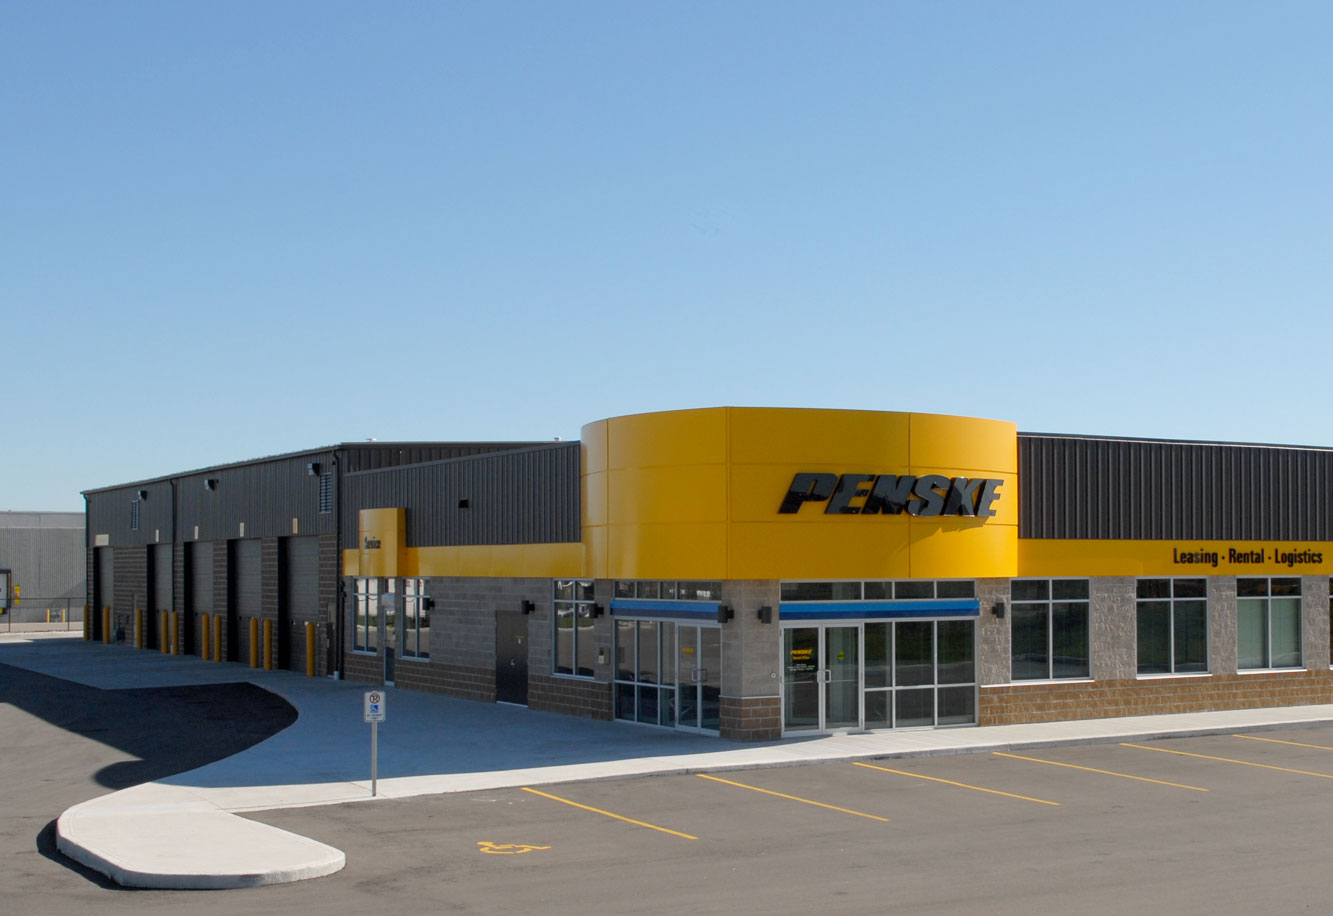 Penske Truck Leasing Project Picture